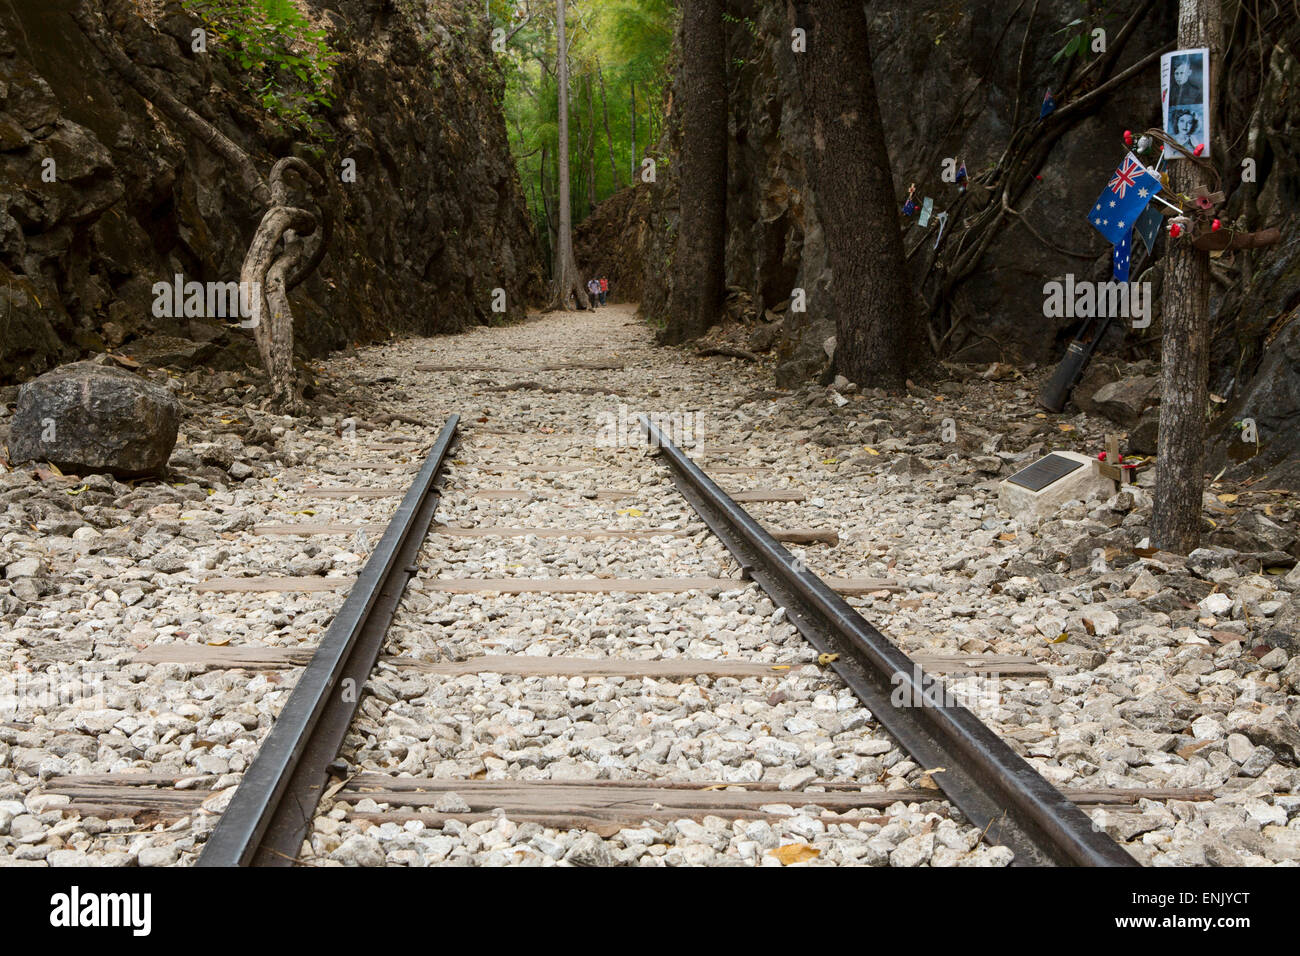 Hellfire Pass Museum, on the infamous Thai-Burmese Death Railway, Hellfire Pass, Kanchanaburi, Thailand - Stock Image